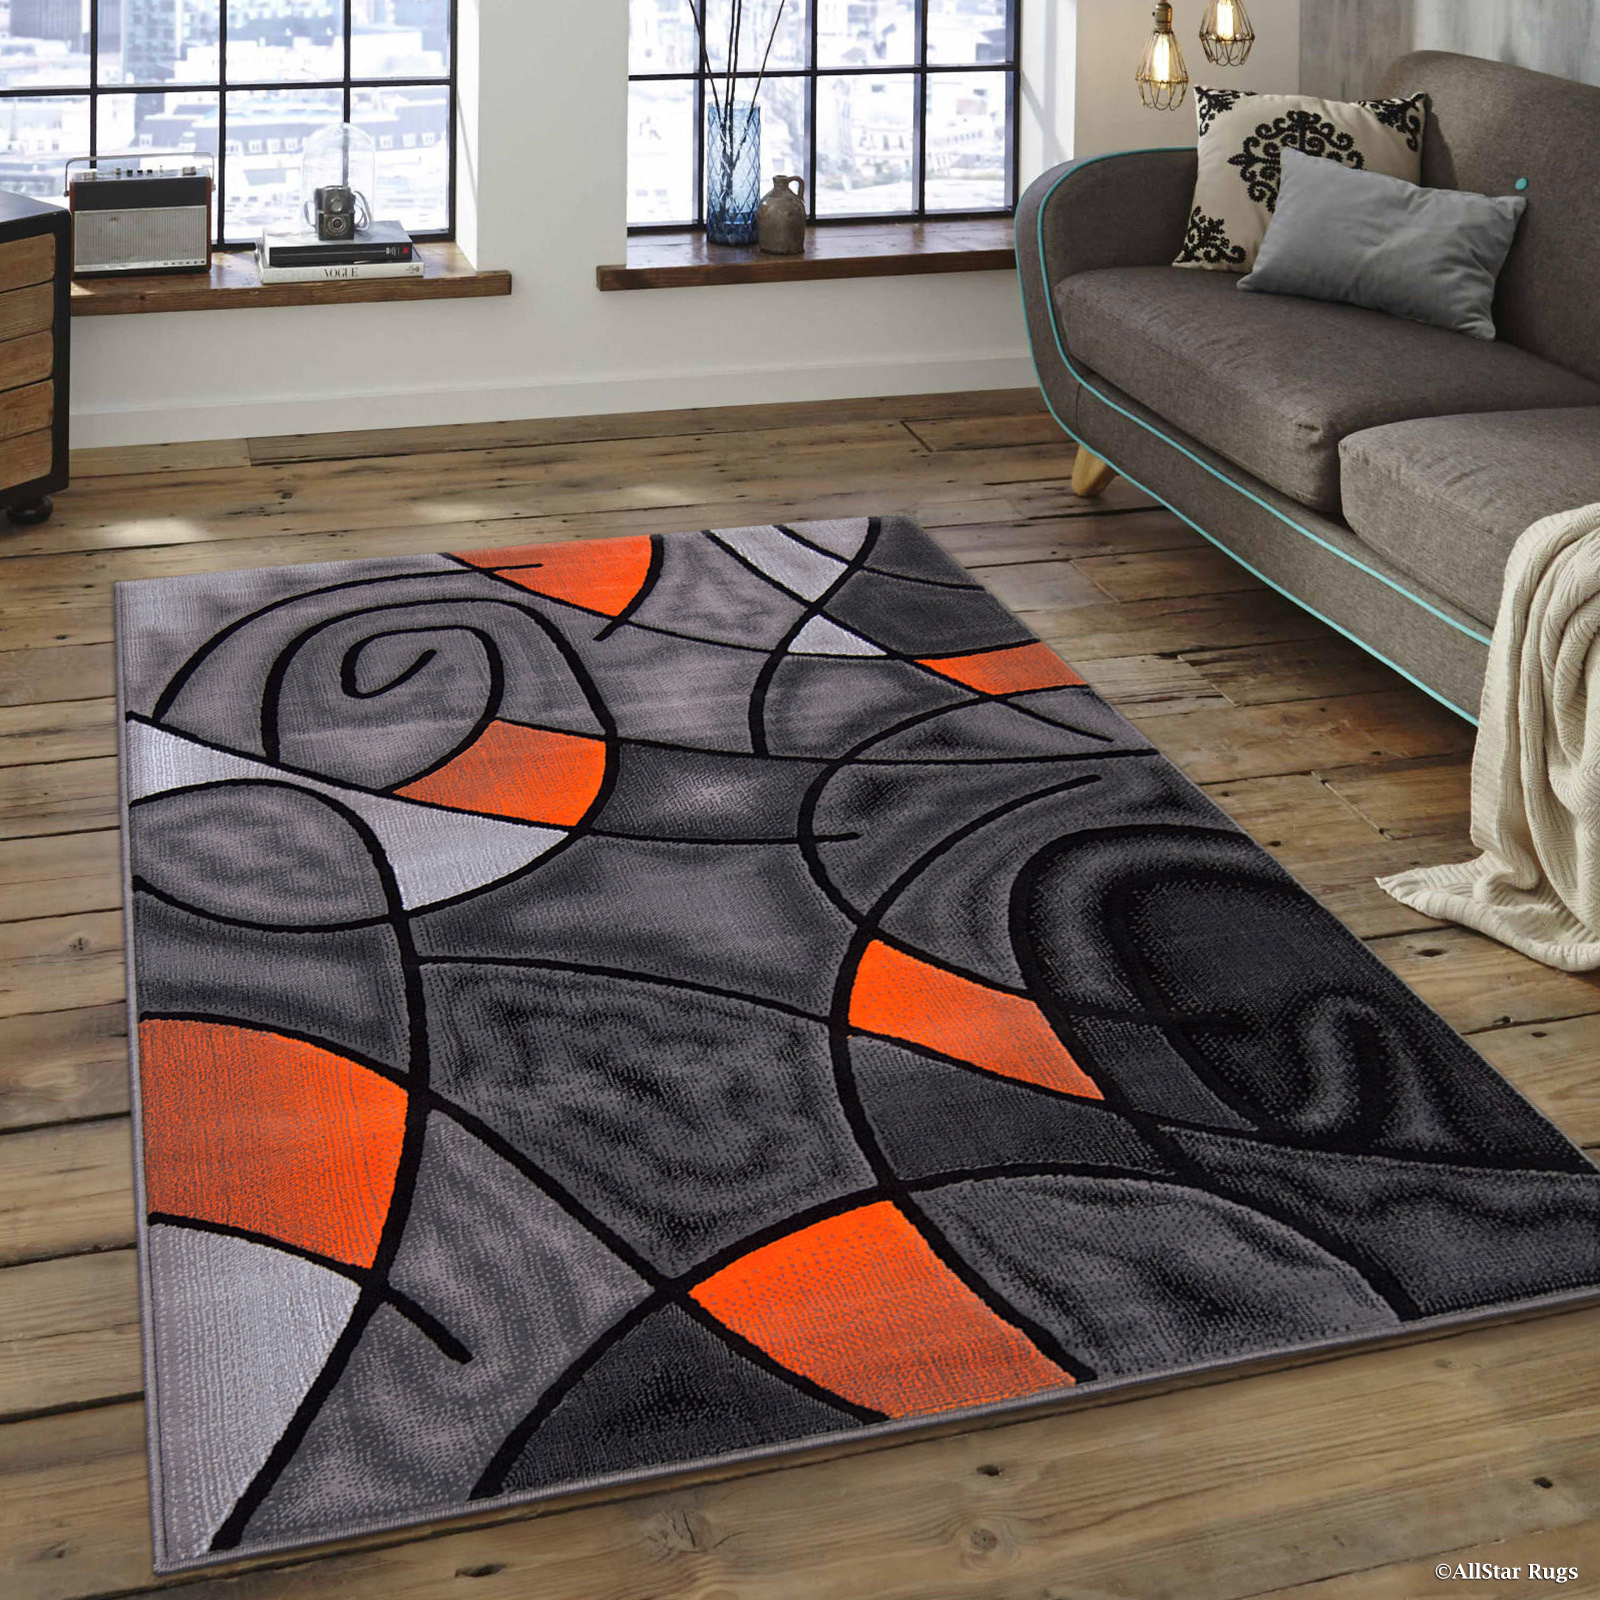 "AllStar Orange Hand Made Modern. Transitional. Floral. design Area Rug with Dimensional hand-carving highlights (7' 10"" x 10')"